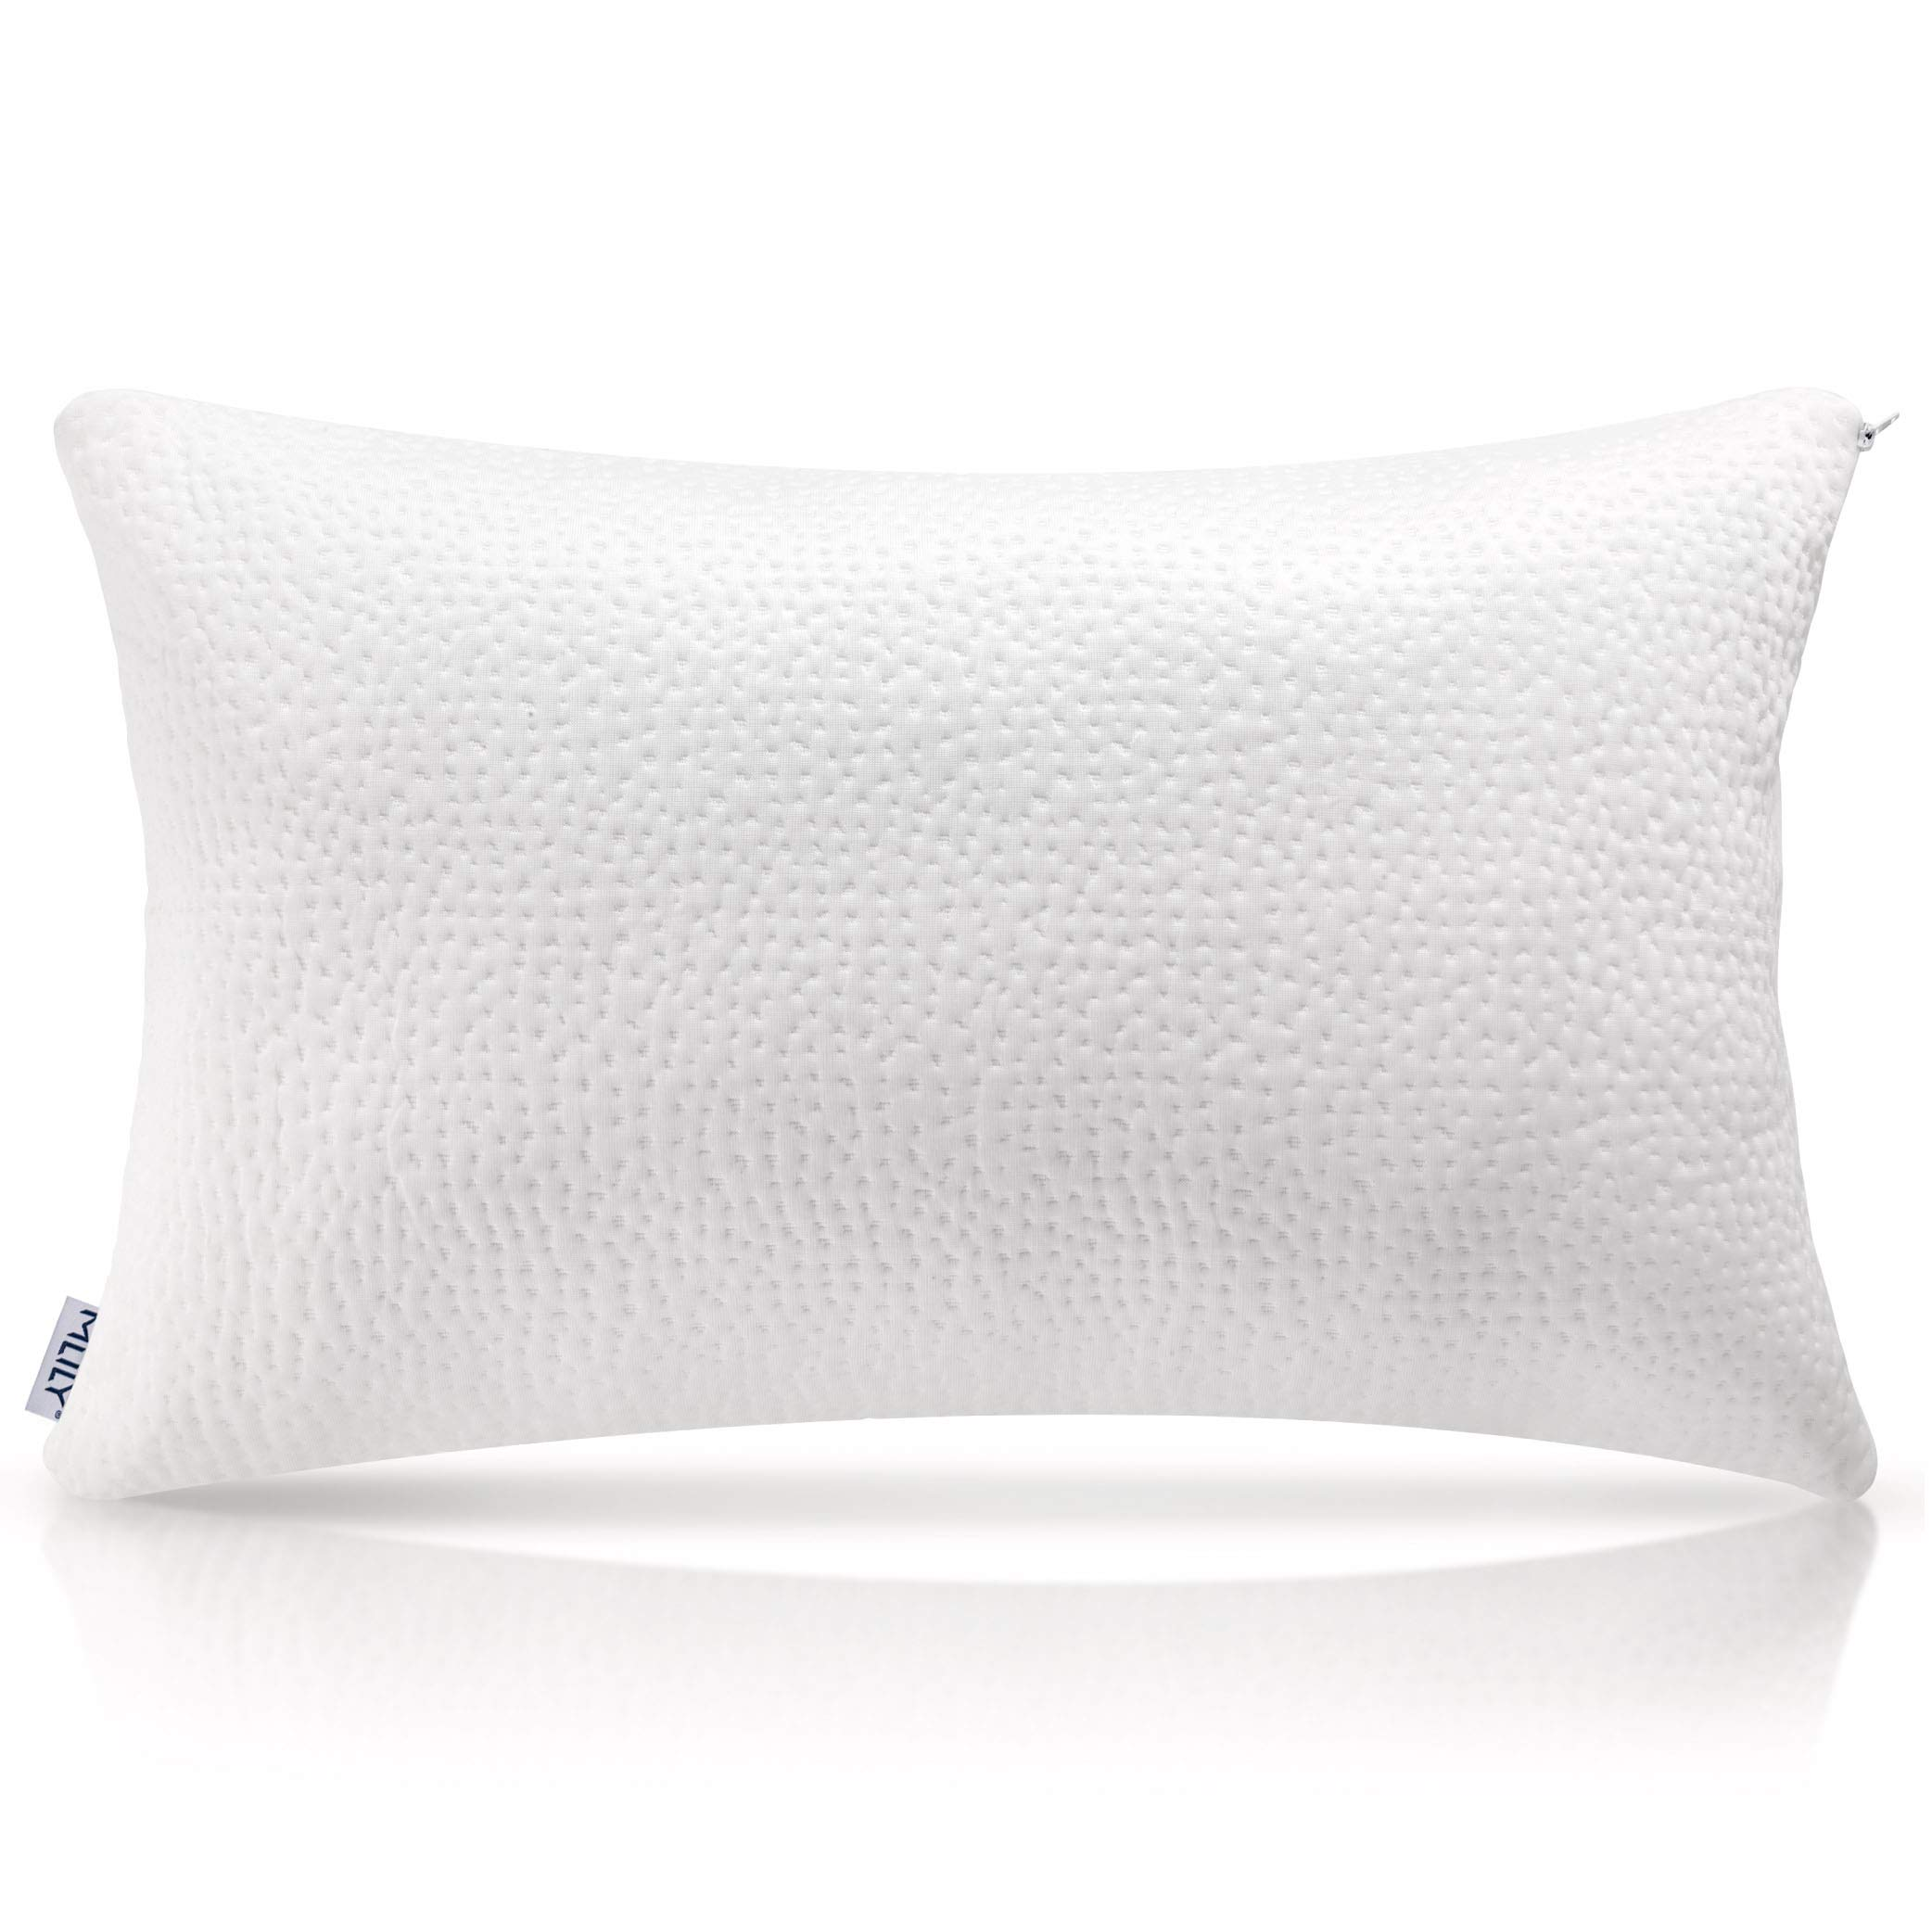 Milemont Shredded Memory Foam Pillow, Bed Pillows, Cooling Pillow for Side Back Sleepers with Washable Removable Cover, CertiPUR-US, Queen by Milemont